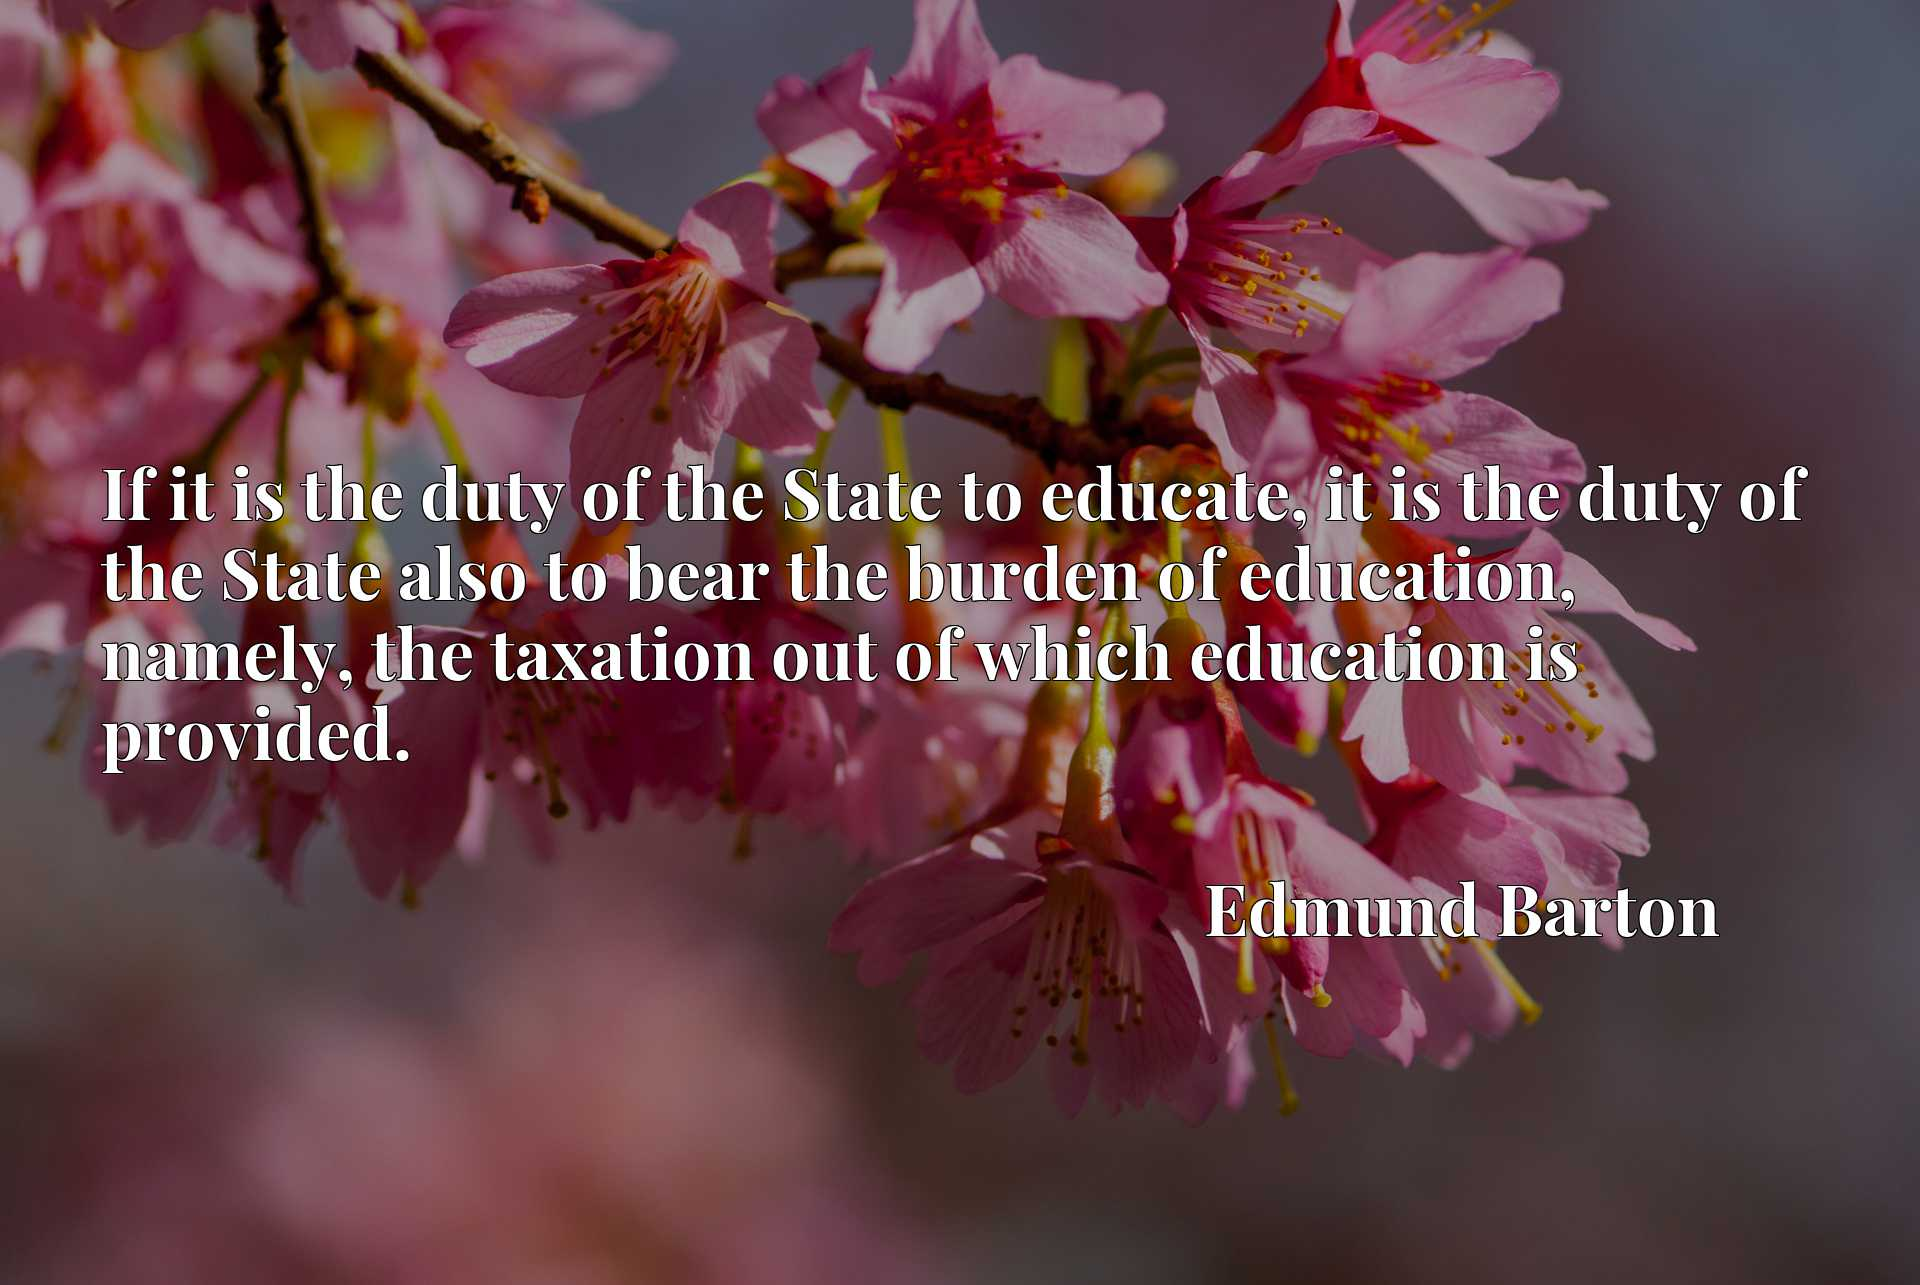 If it is the duty of the State to educate, it is the duty of the State also to bear the burden of education, namely, the taxation out of which education is provided.